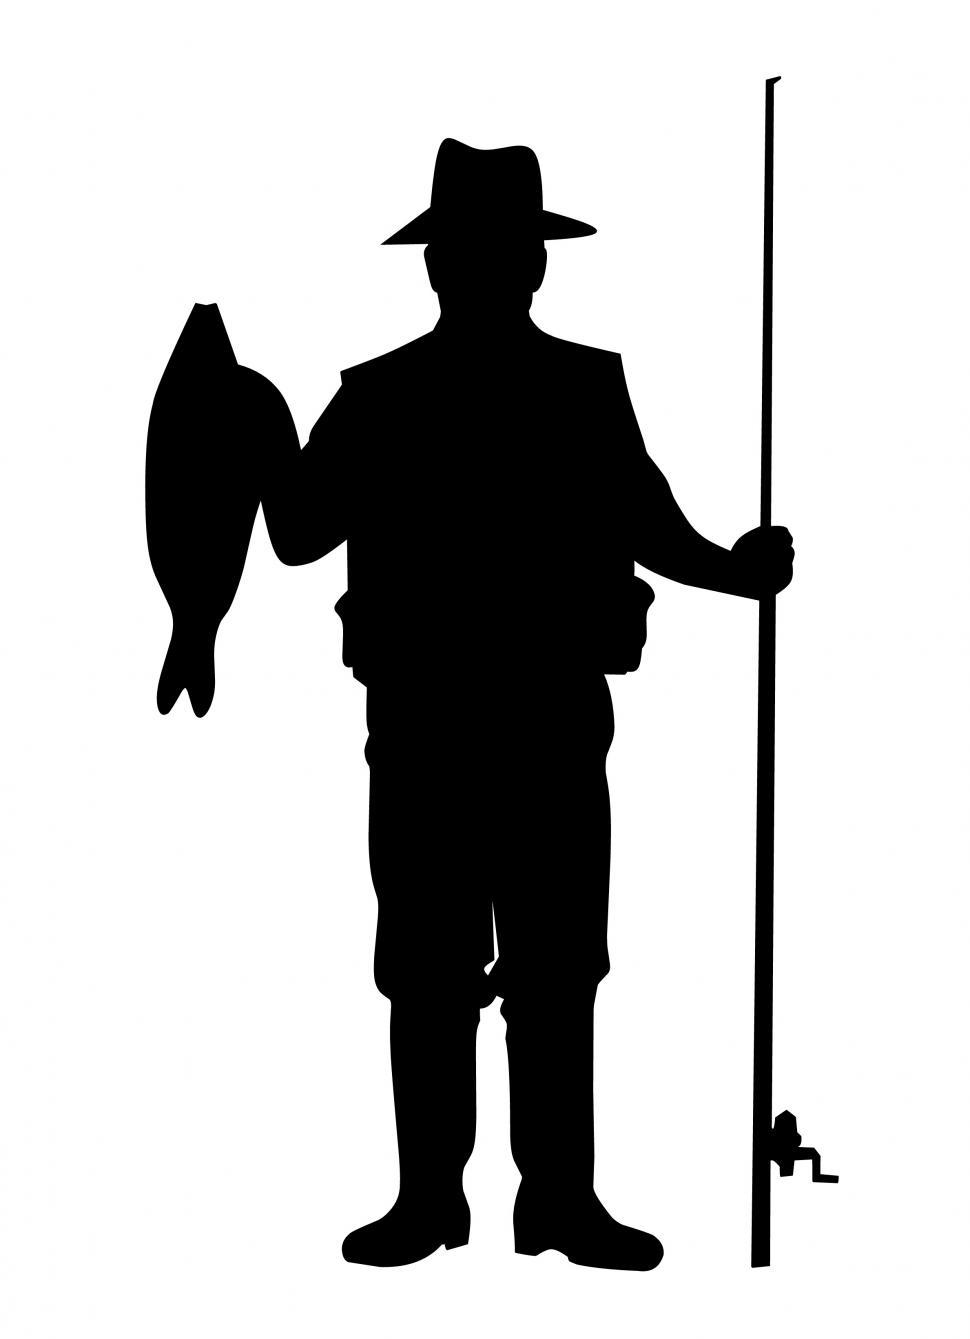 Download Free Stock HD Photo of fisherman Silhouette  Online